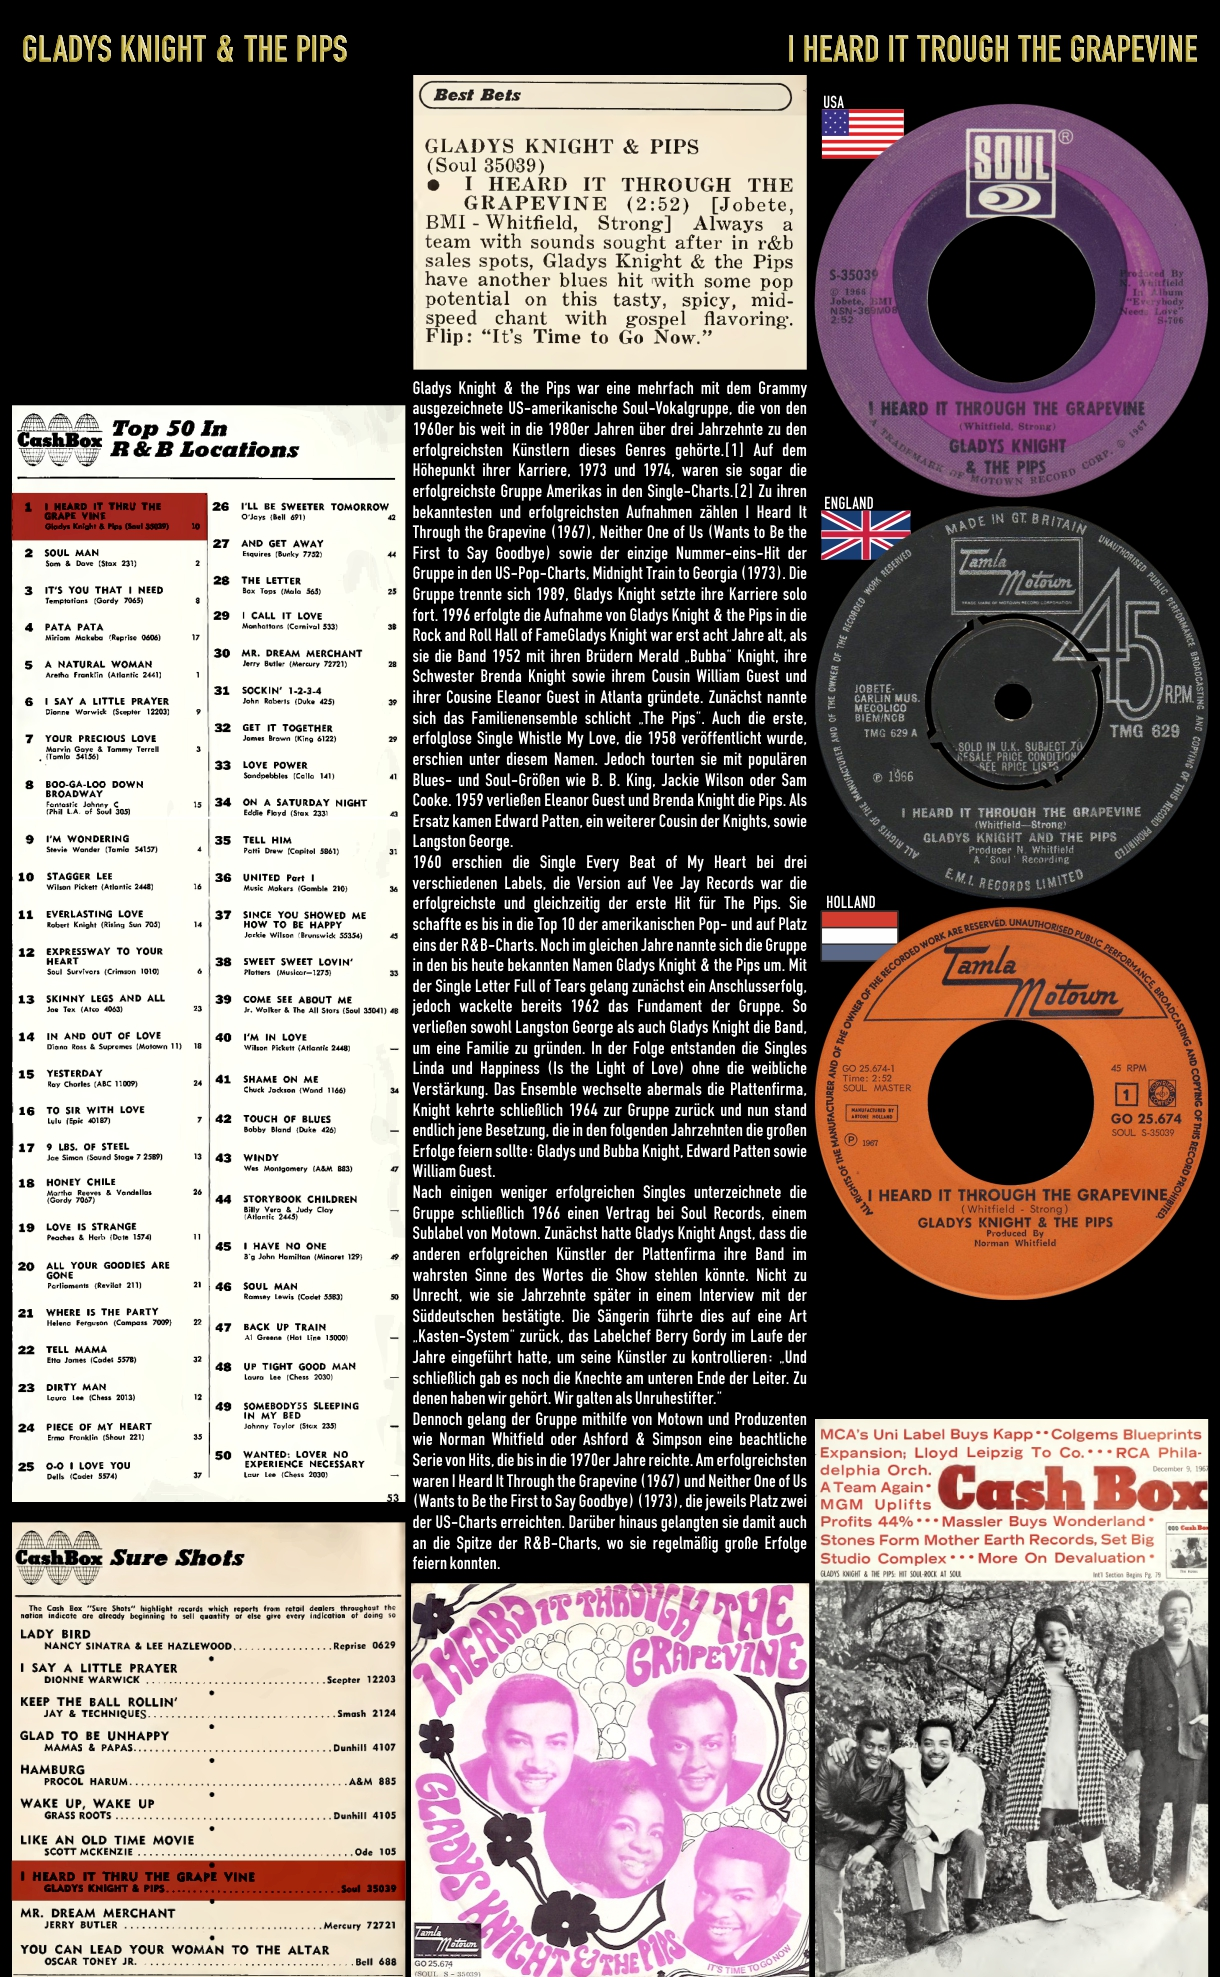 670121_Gladys Knight & The Pips_I Heard It Through The Grapevine